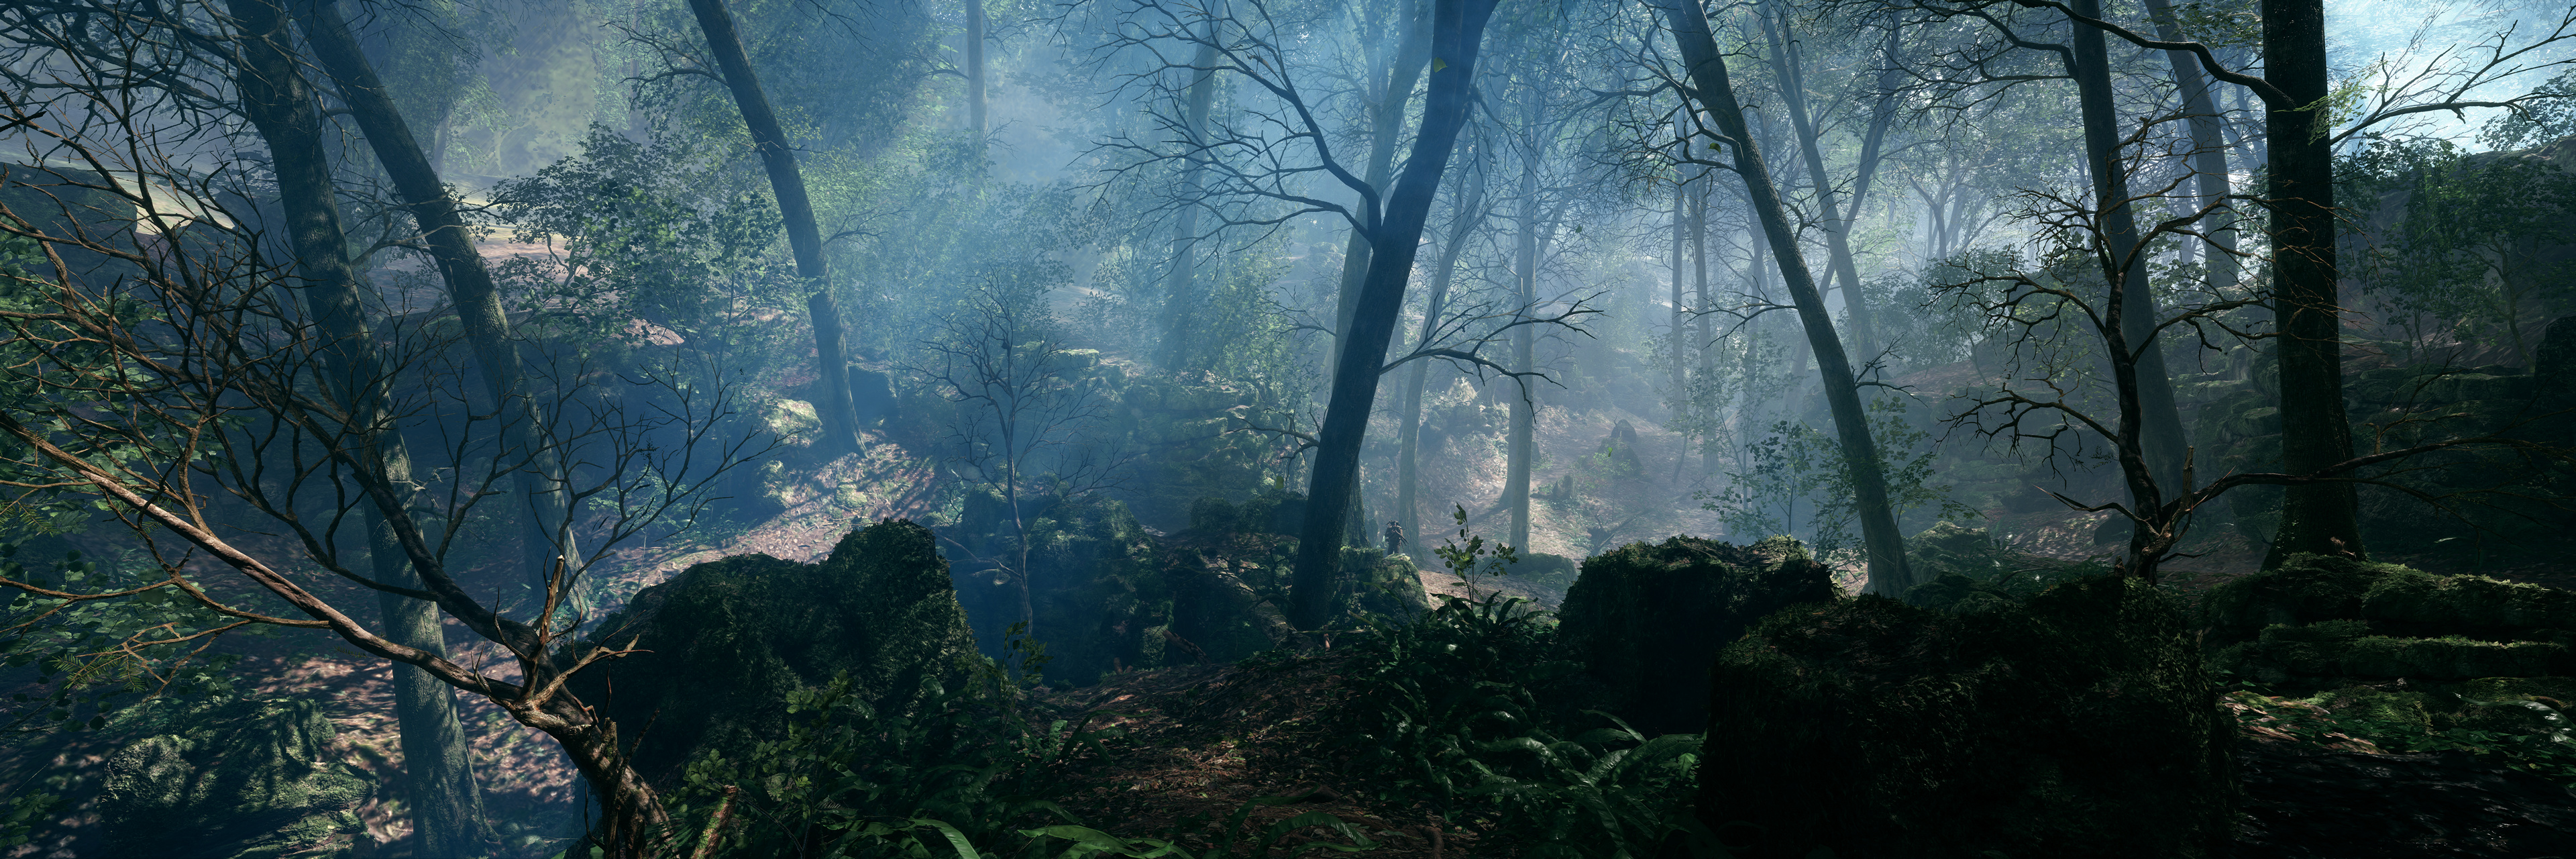 Battlefield 1 Trial Now Features Italian Coast, Ballroom Blitz And